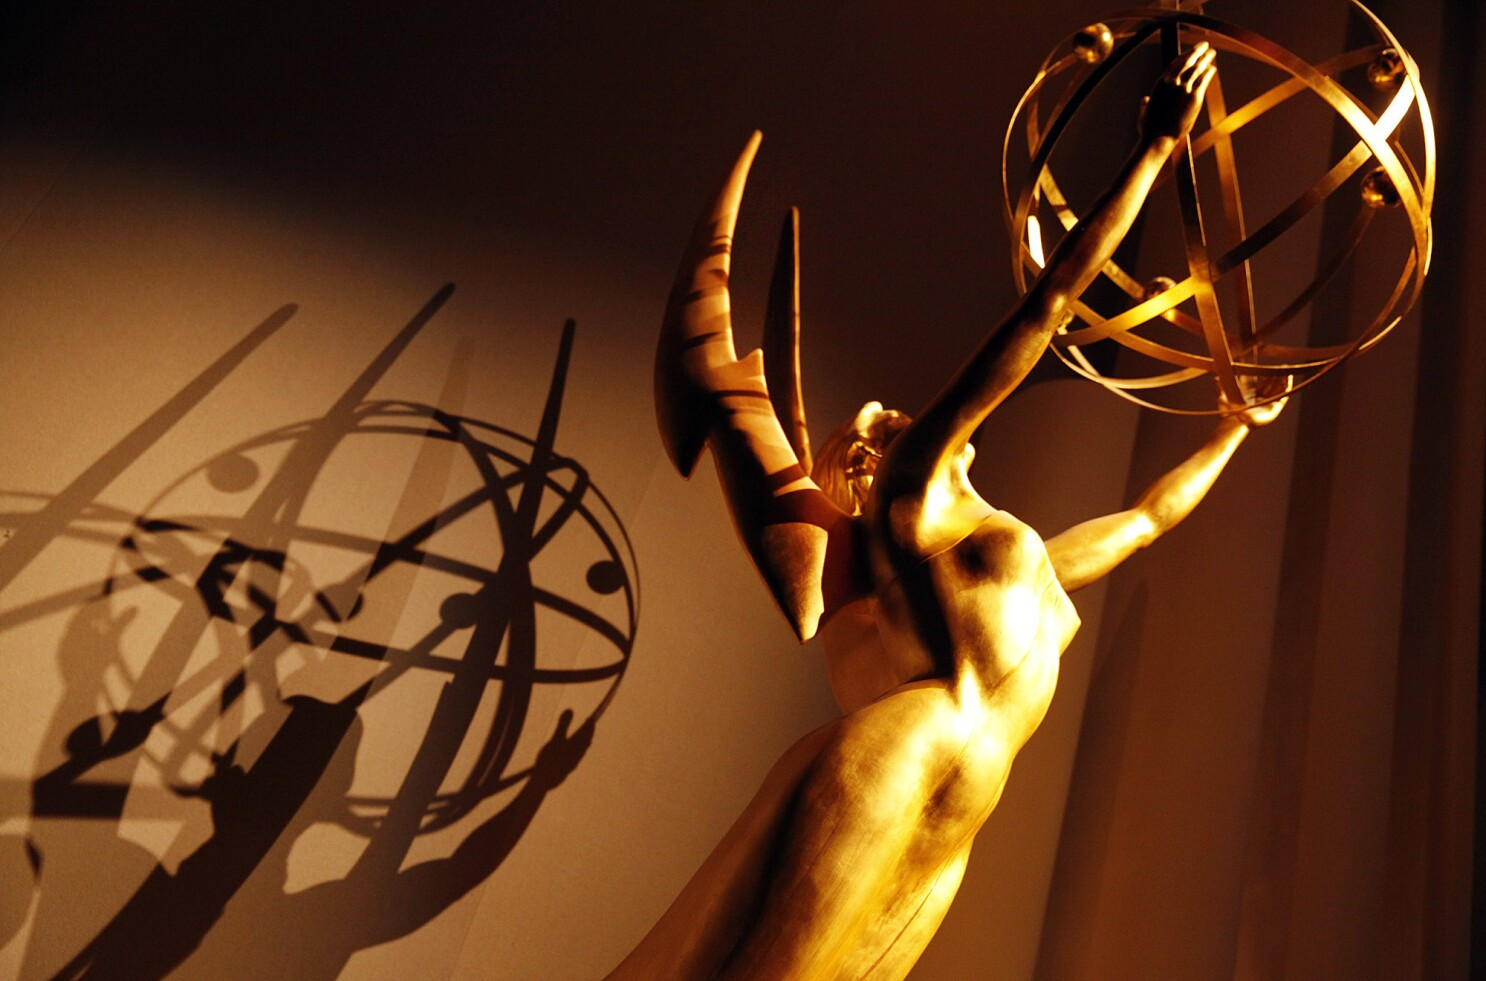 Emmys 2019: Snubs and Surprises - Los Angeles Times